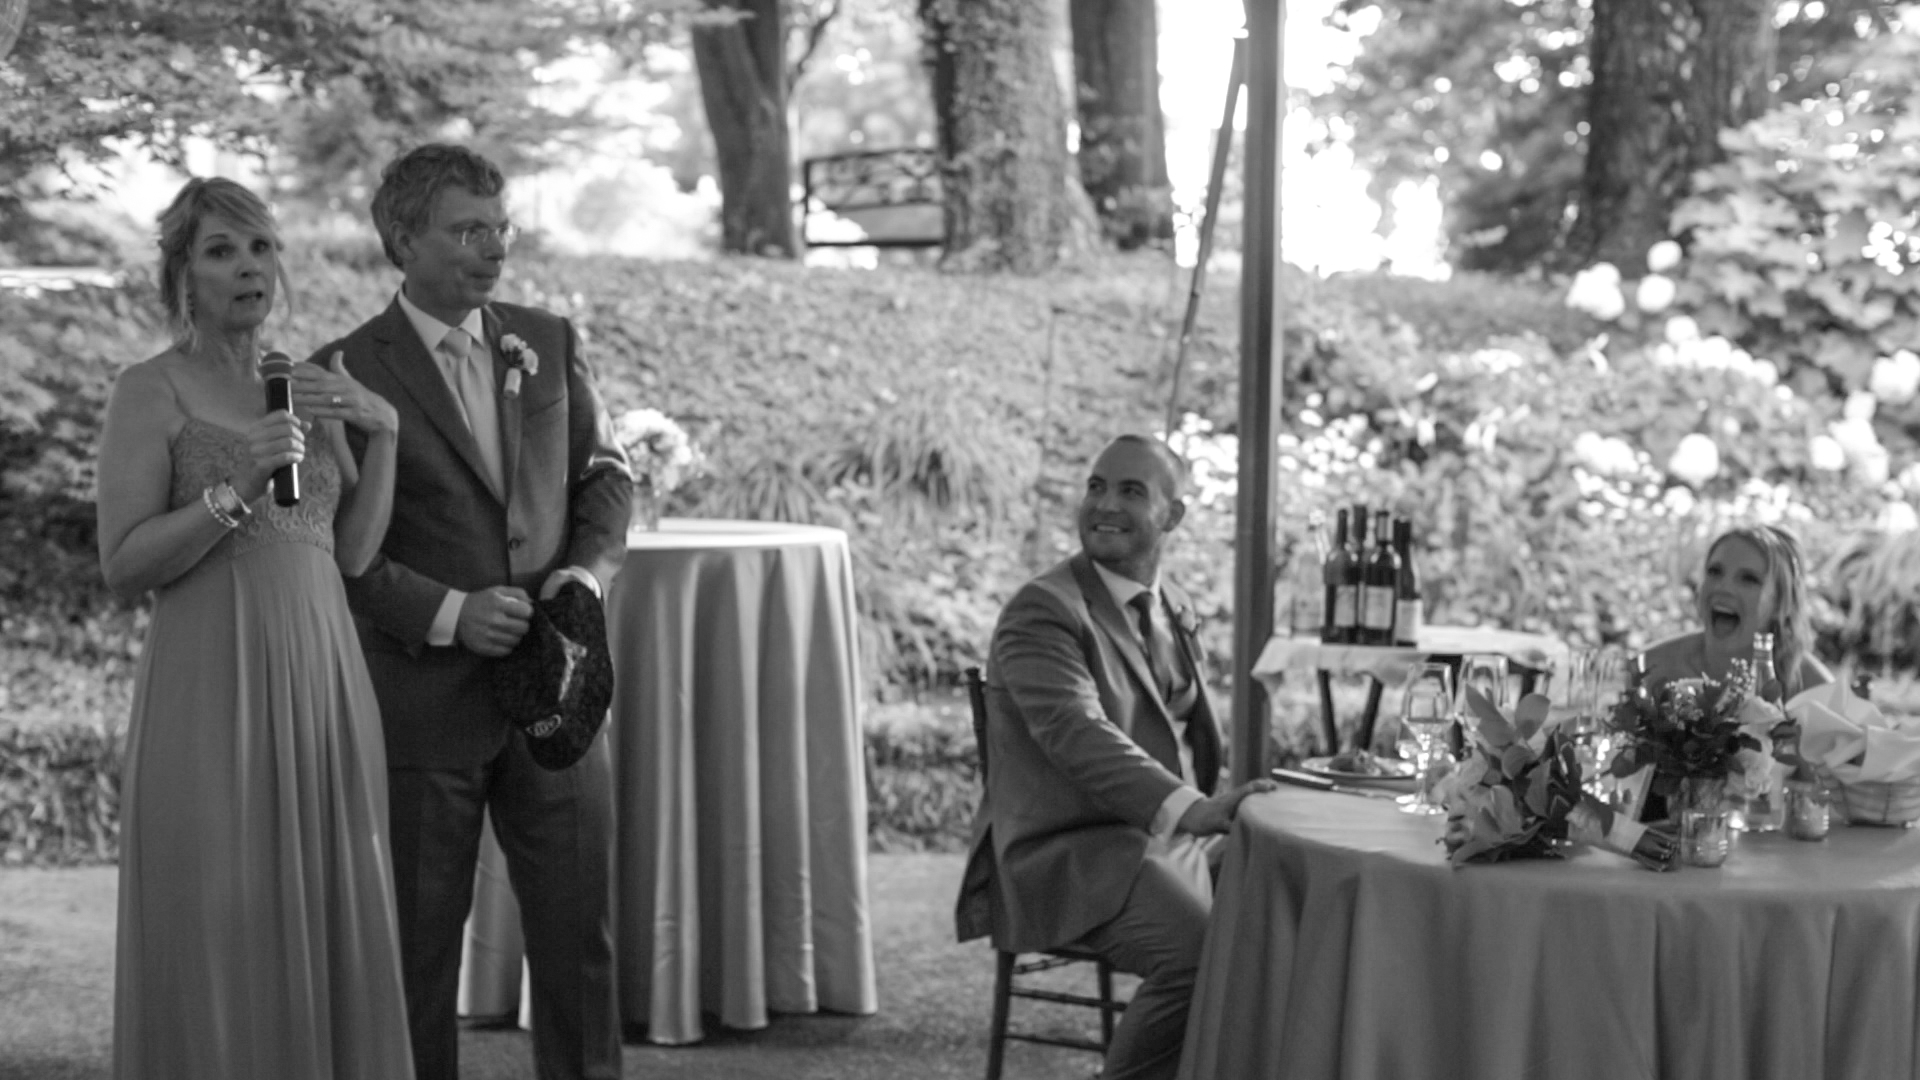 Keswick vineyards wedding